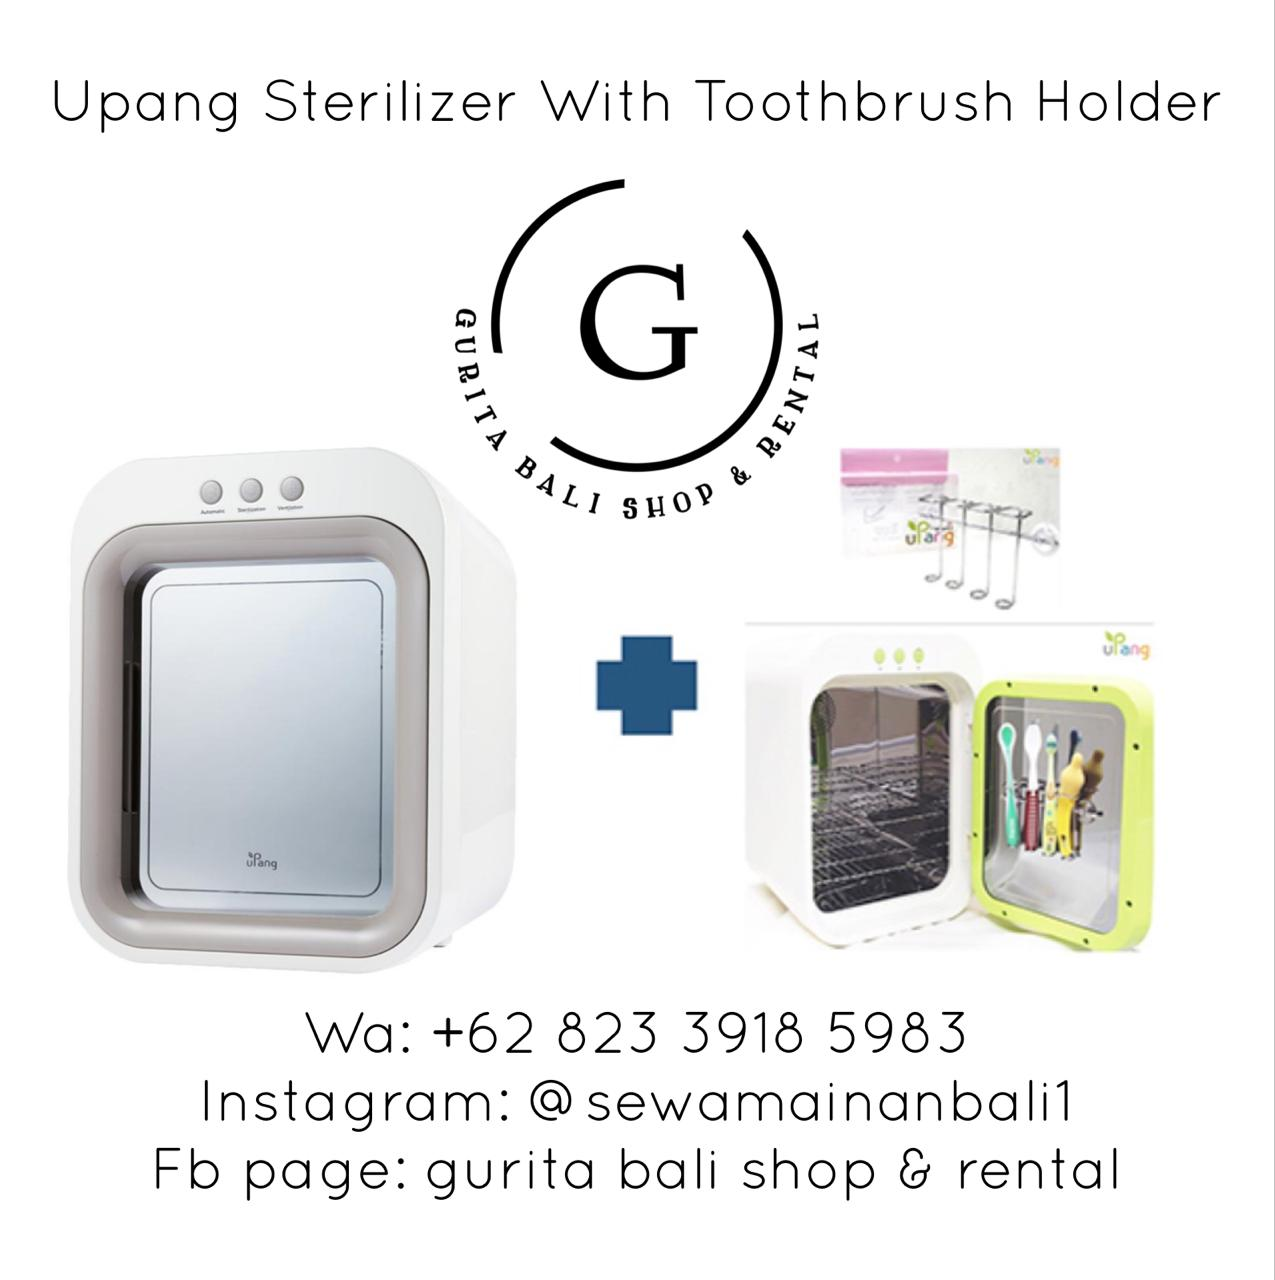 UPANG STERILIZER WITH TOOTHBRUSH HOLDER